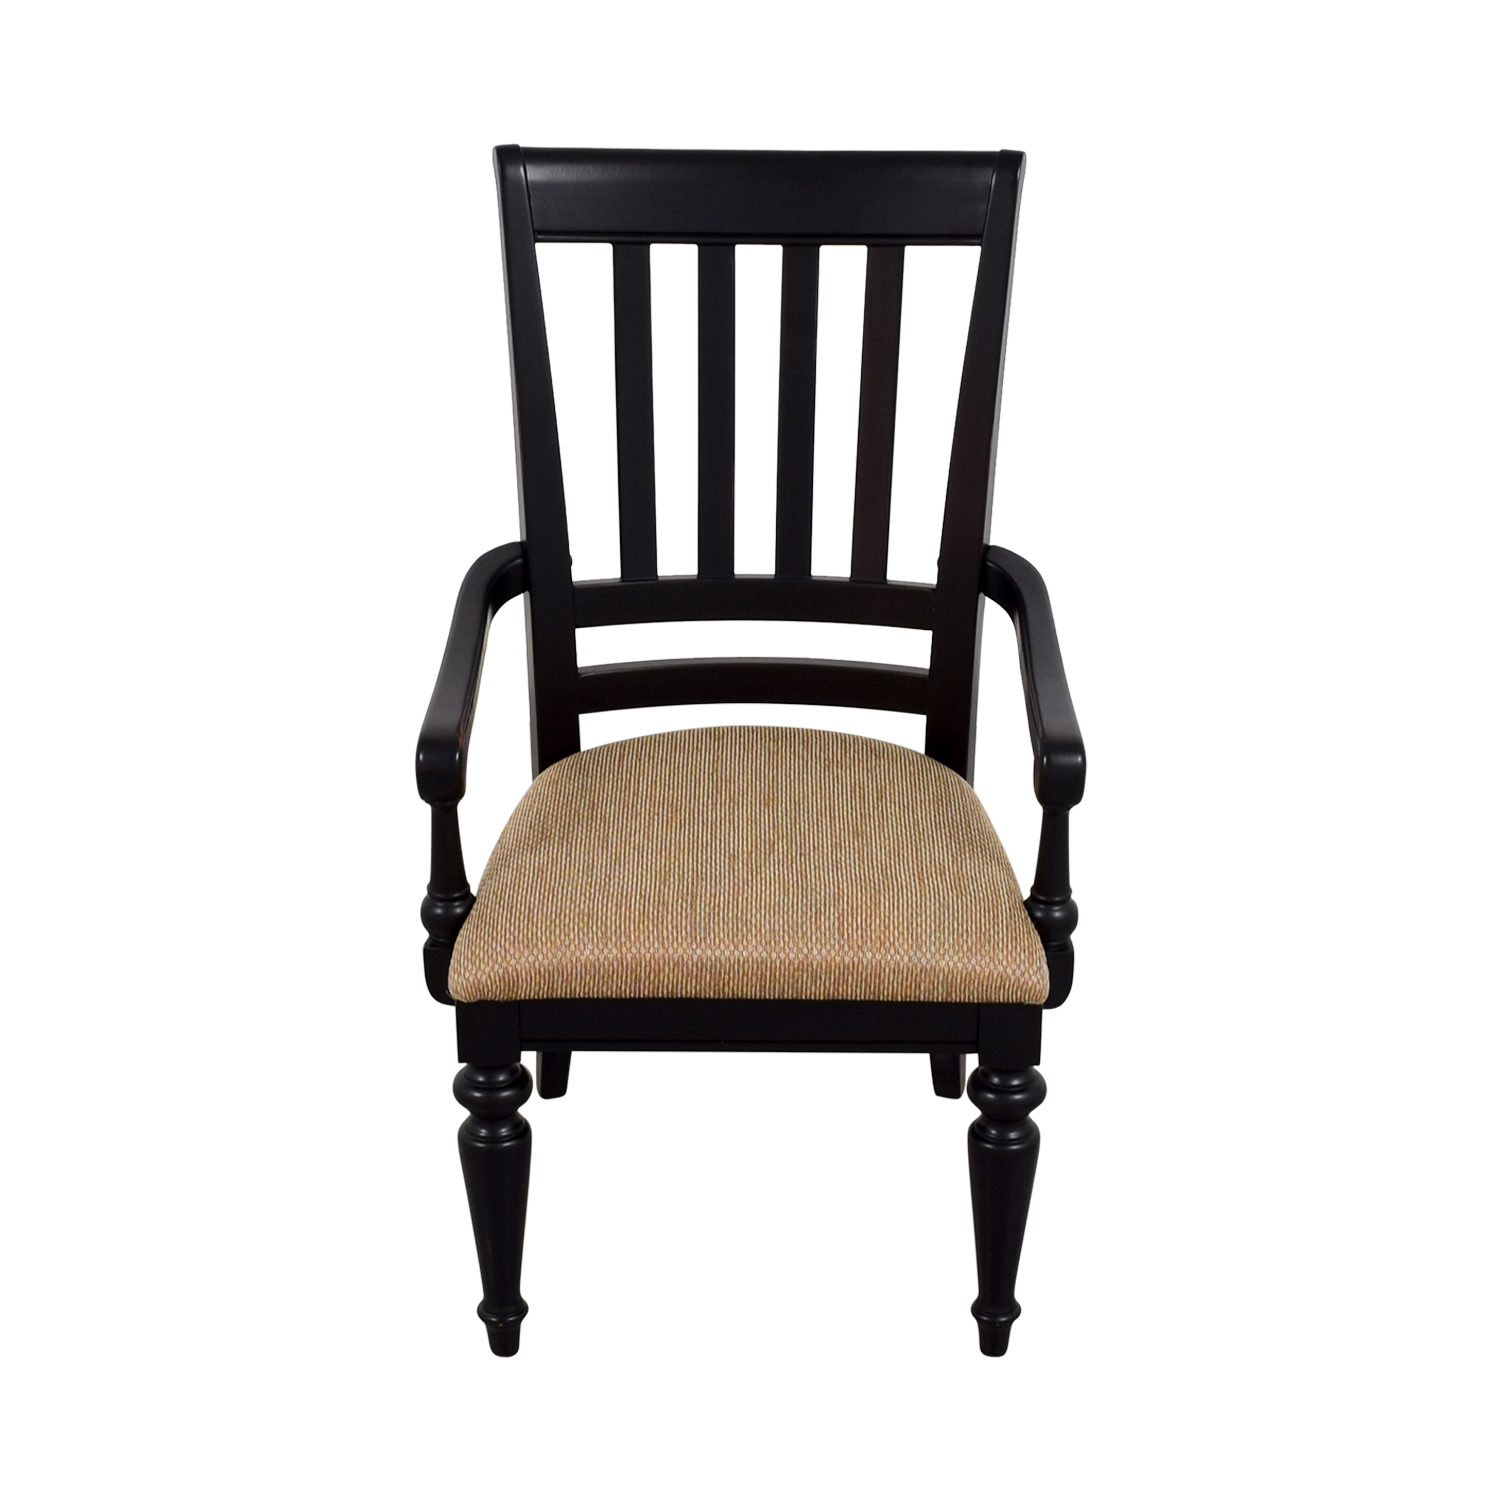 Black Arm Chair with Beige Upholstered Padded Seat used